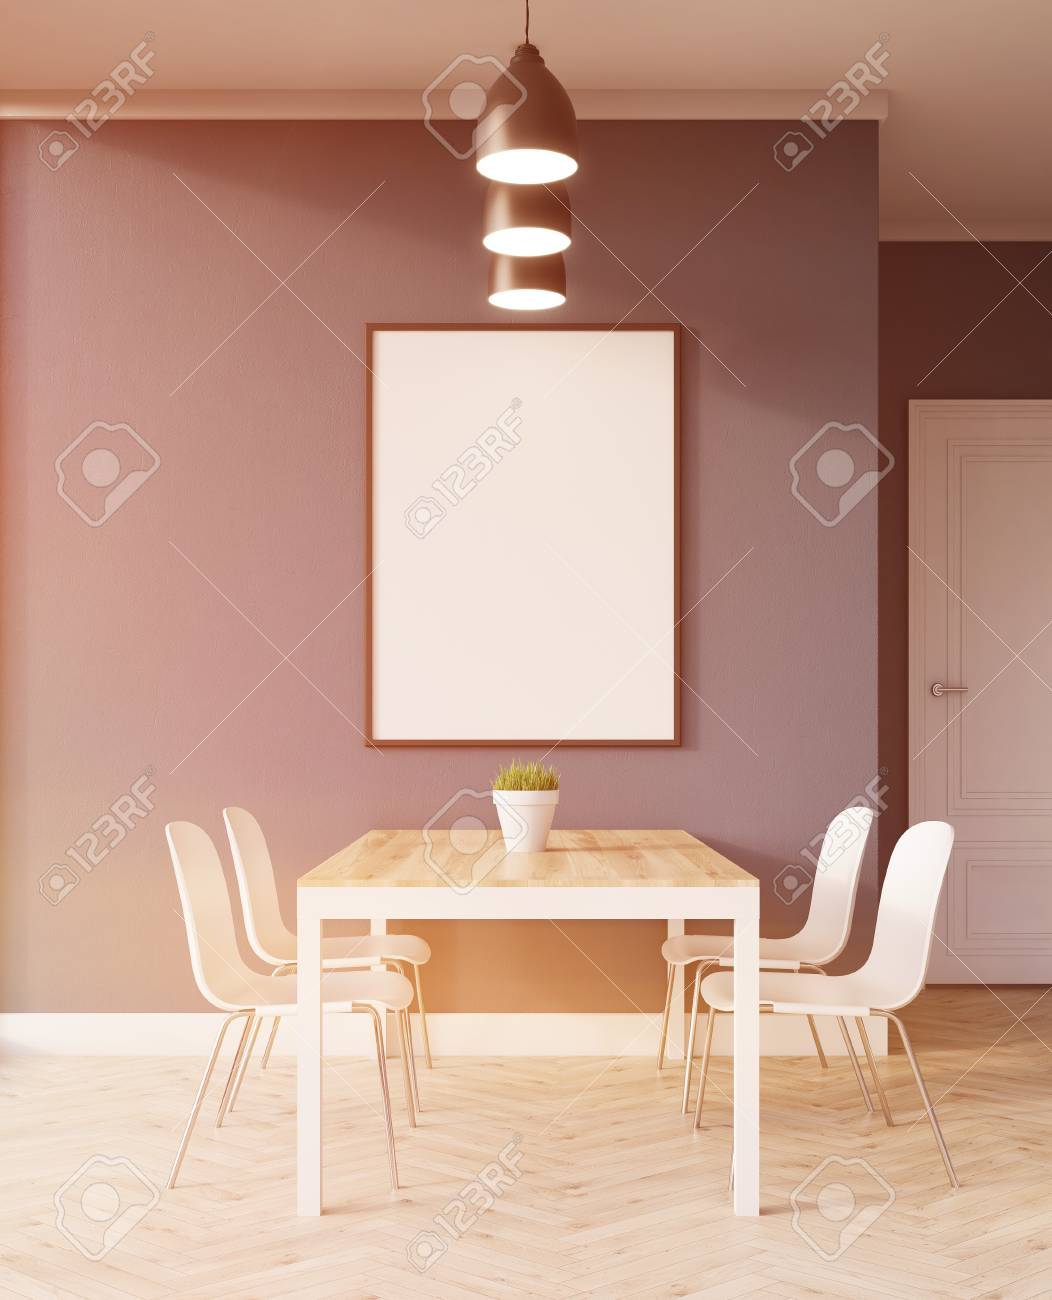 Dining Table In Kitchen With Blue Walls And Large Poster. Concept Of Home  Cooked Dinner